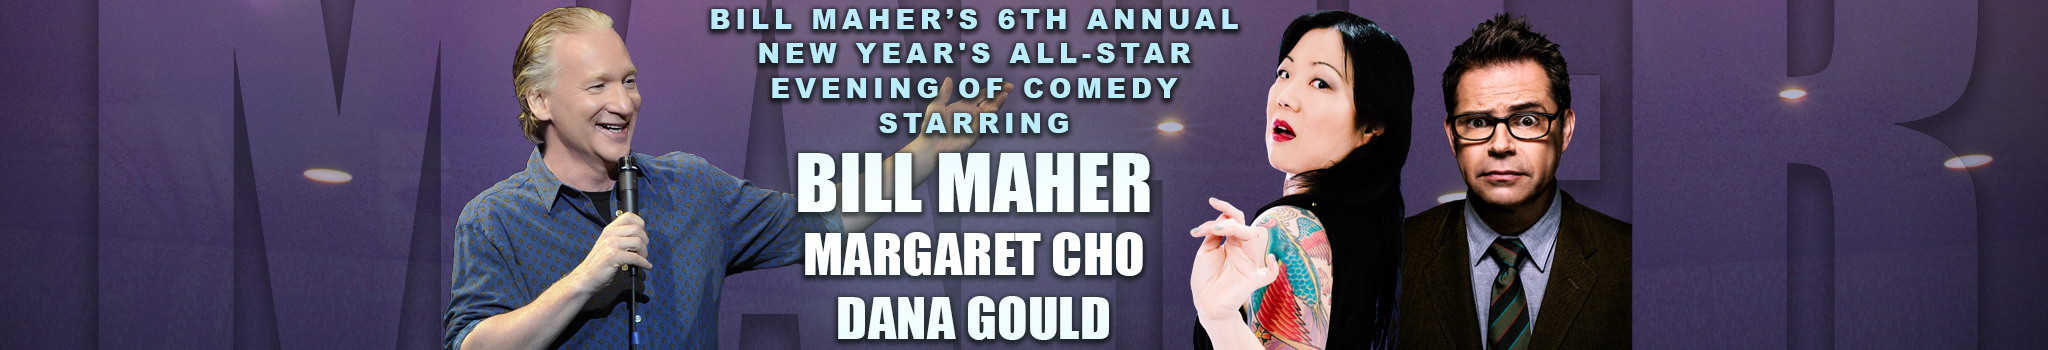 Bill Maher's 6th Annual New Year's All-Star Evening of Comedy with Bill Maher & Margaret Cho & Dana Gould